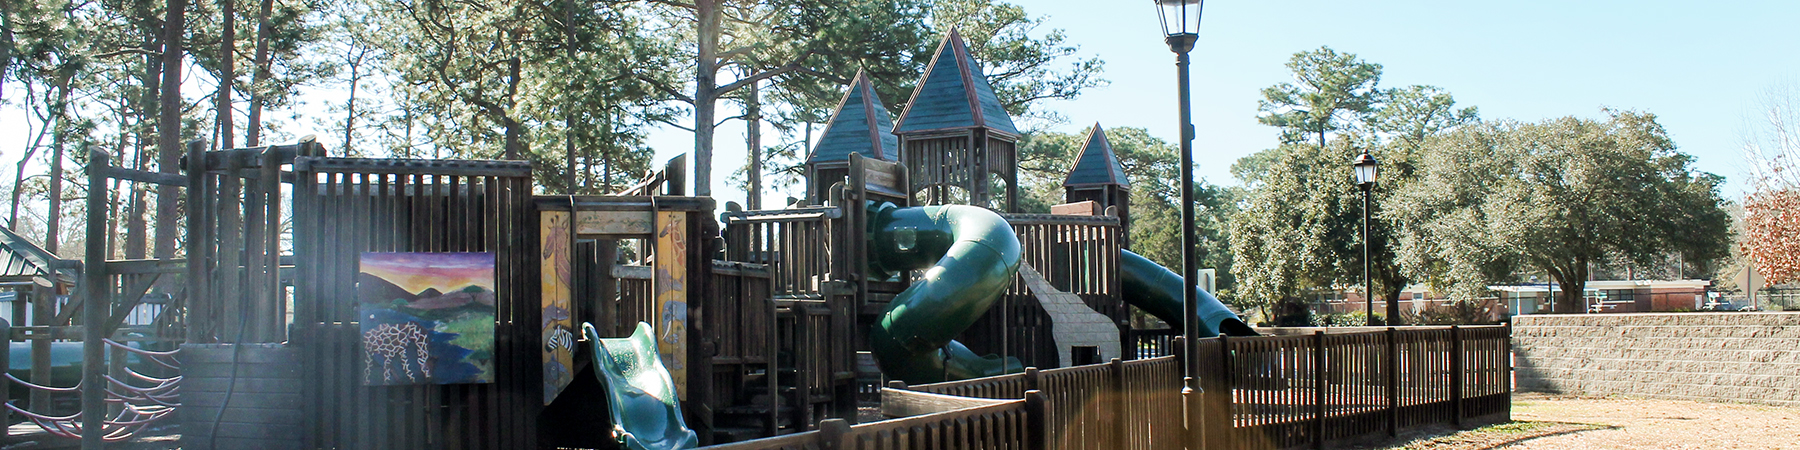 Foley, Alabama, Kids Park, Park, playground, attractions